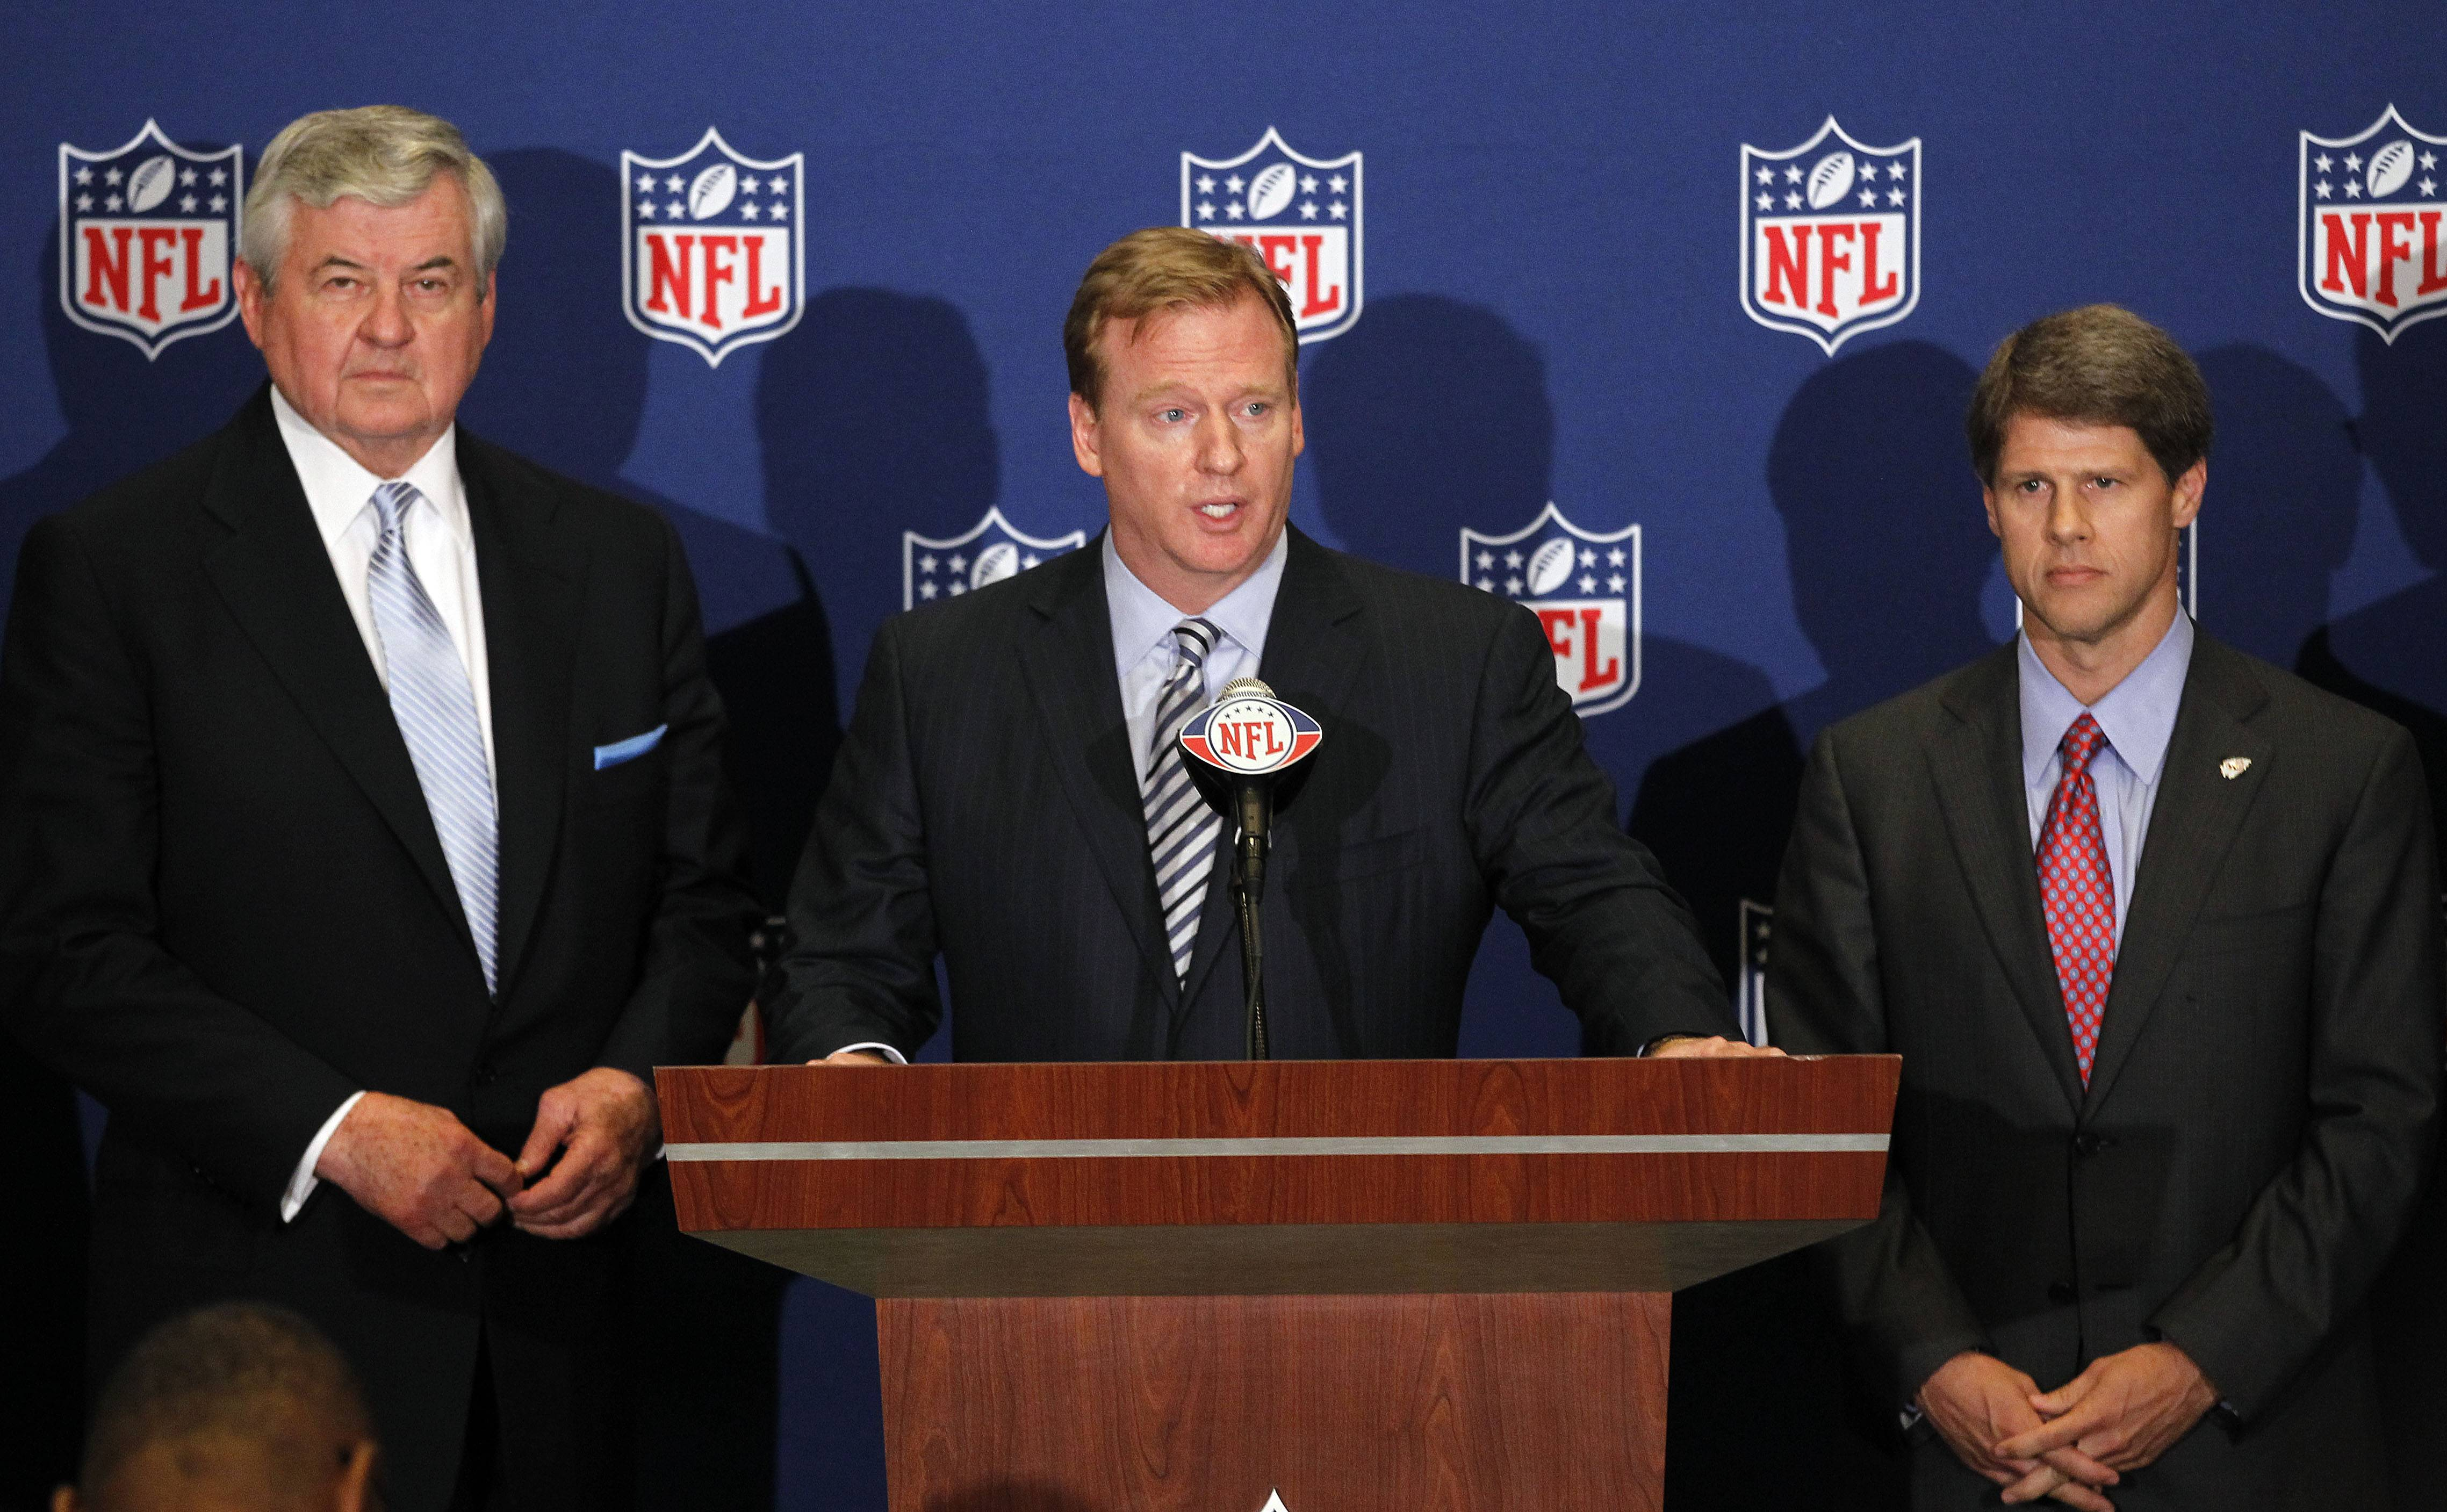 NFL football commissioner Roger Goodell, center, announces that NFL owners have agreed to a tentative agreement that would end the lockout pending the players approval on Thursday. Carolina Panthers owner Jerry Richardson, left, and Kansas City Chiefs owner Clark Hunt look on.